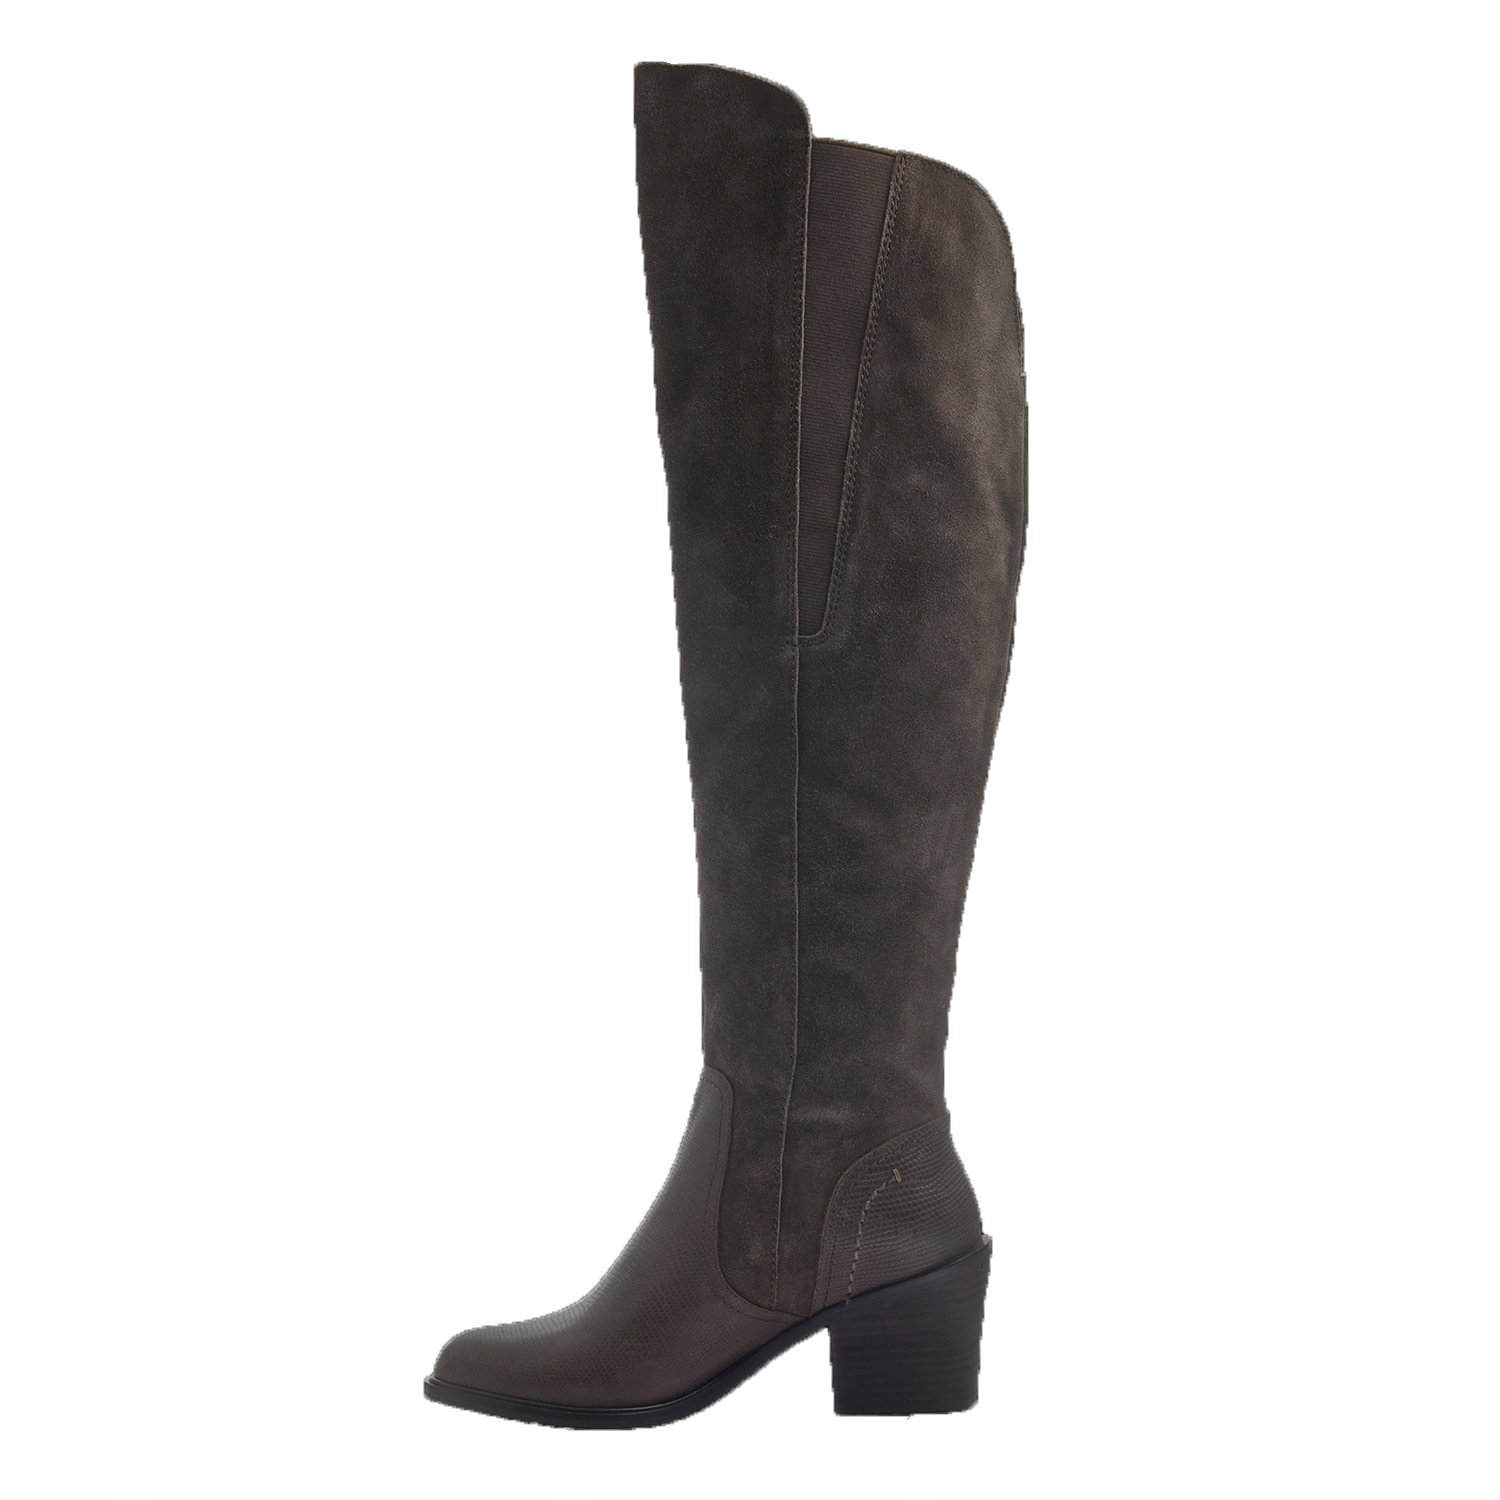 Nicole Clooney Over The Knee Boot | Muse Boutique Outlet – Muse Outlet